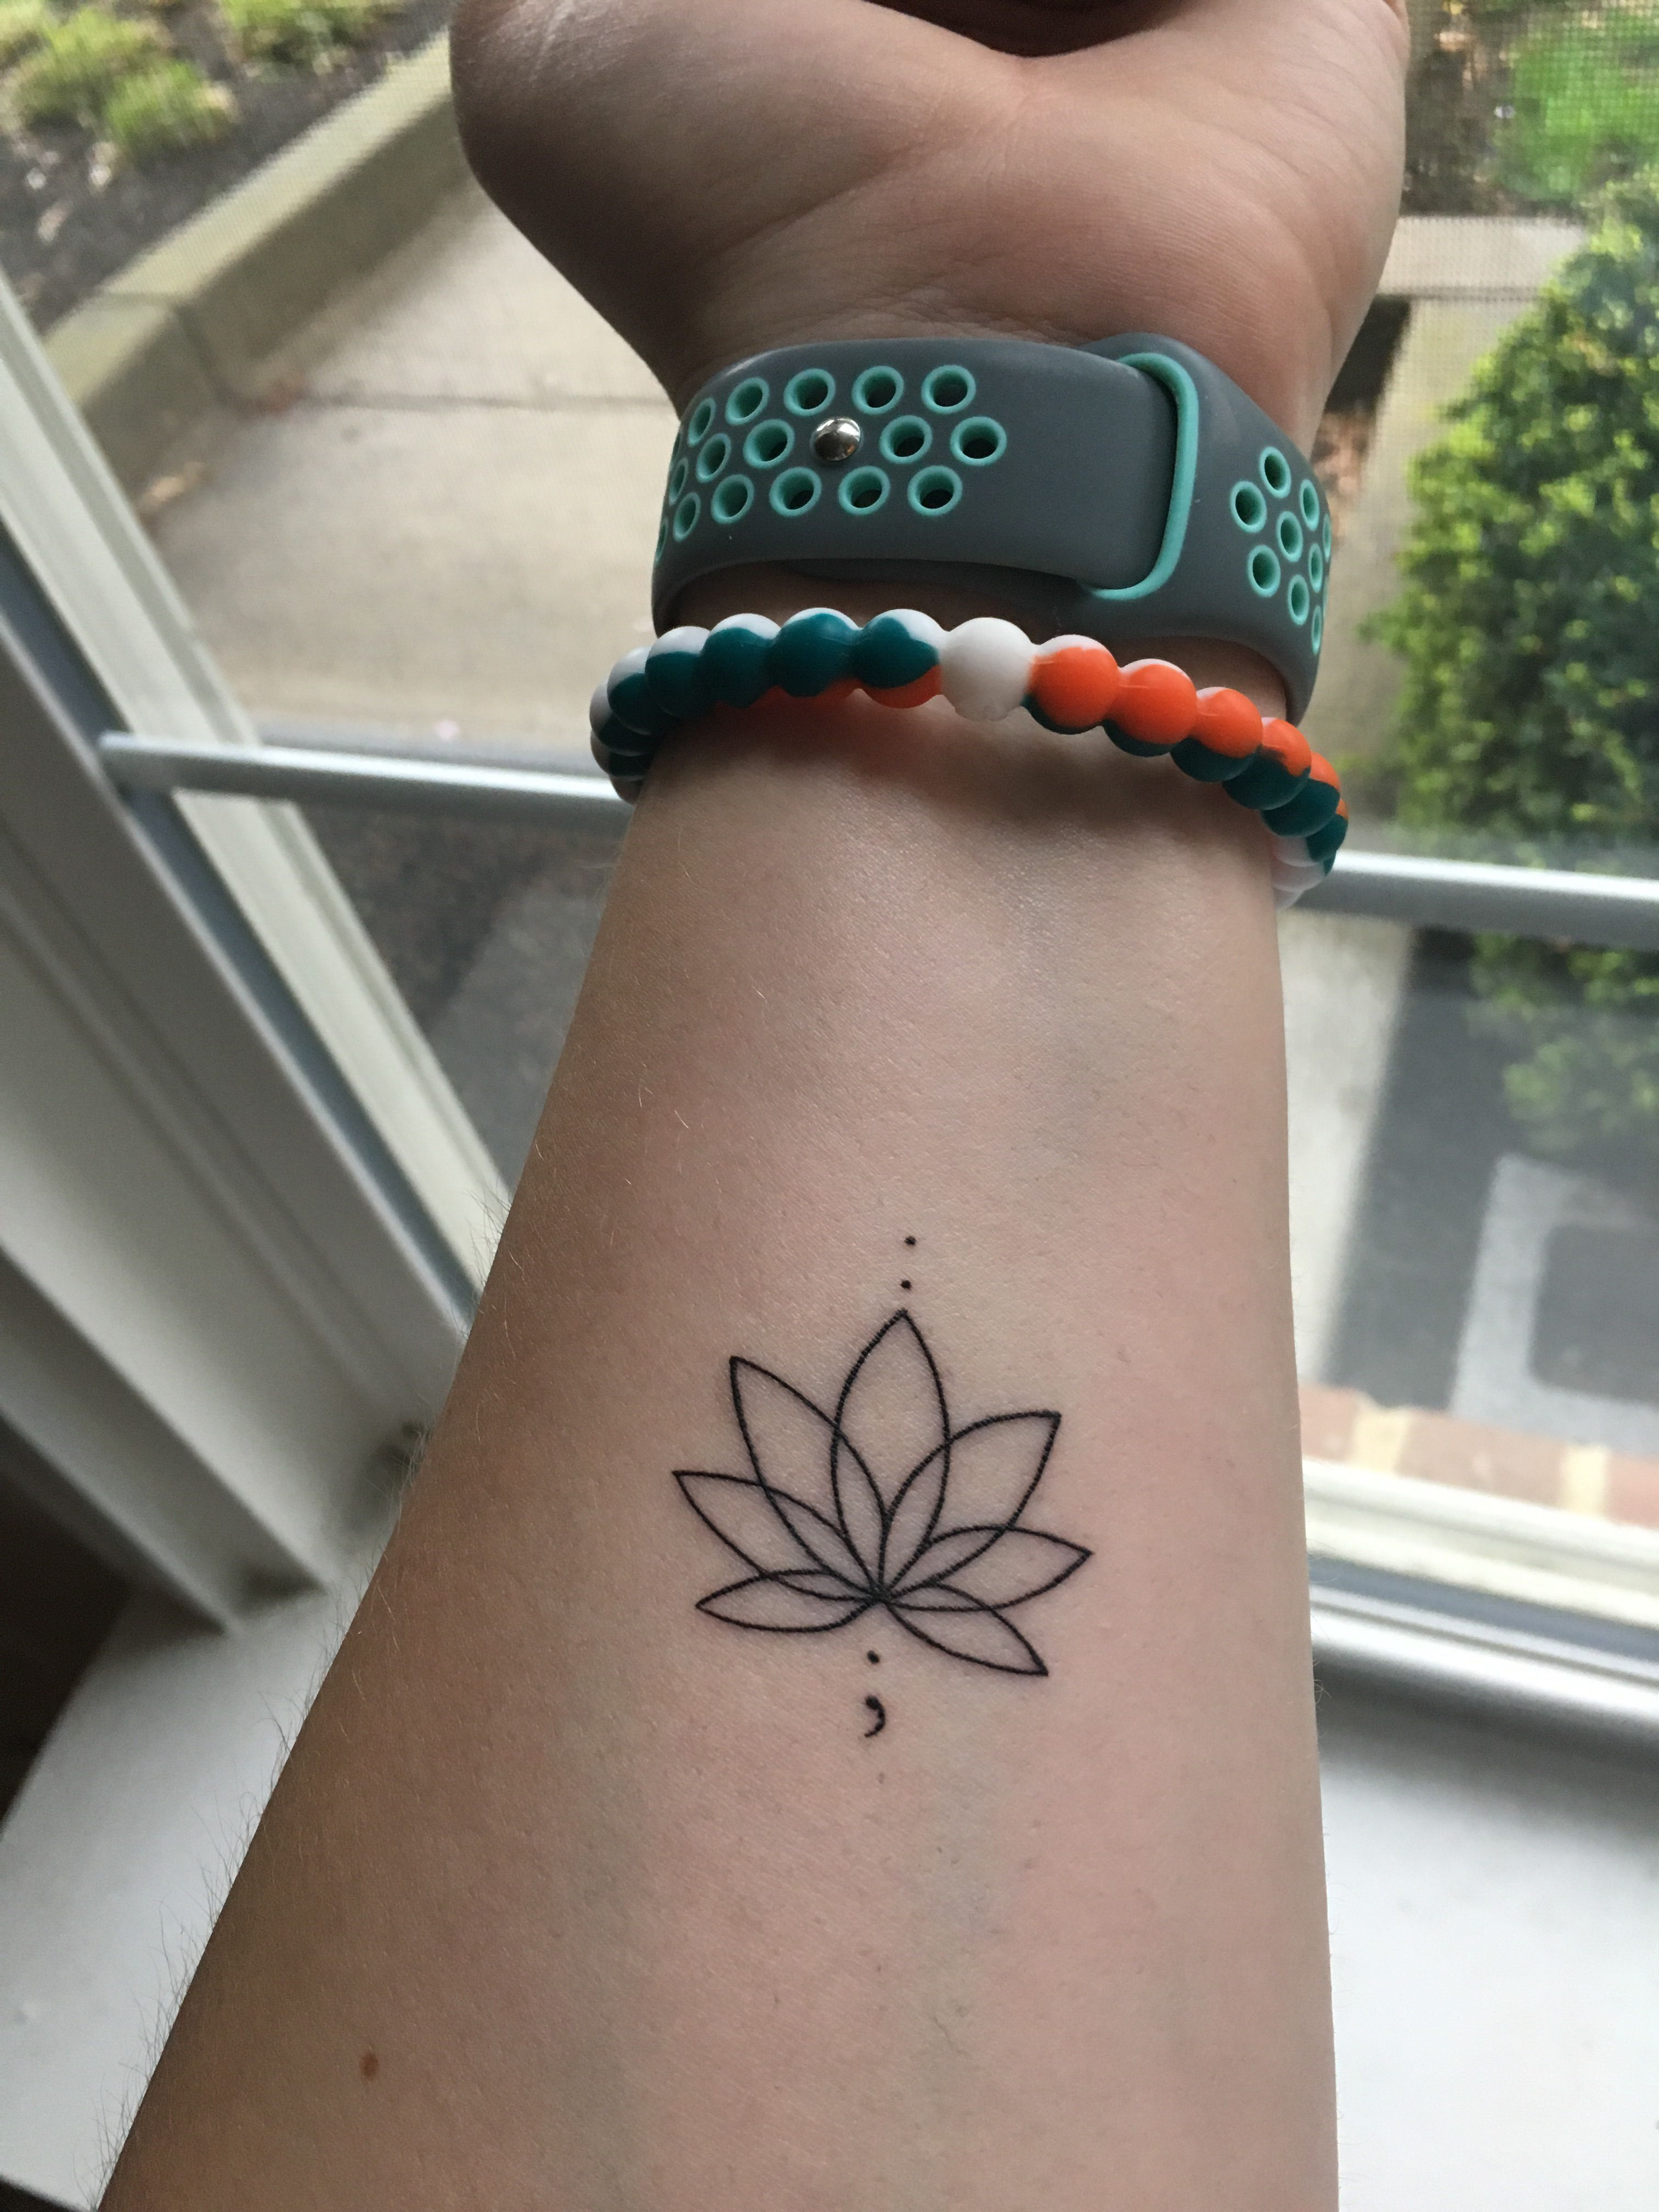 My first tattoo, a lotus flower with a semicolon